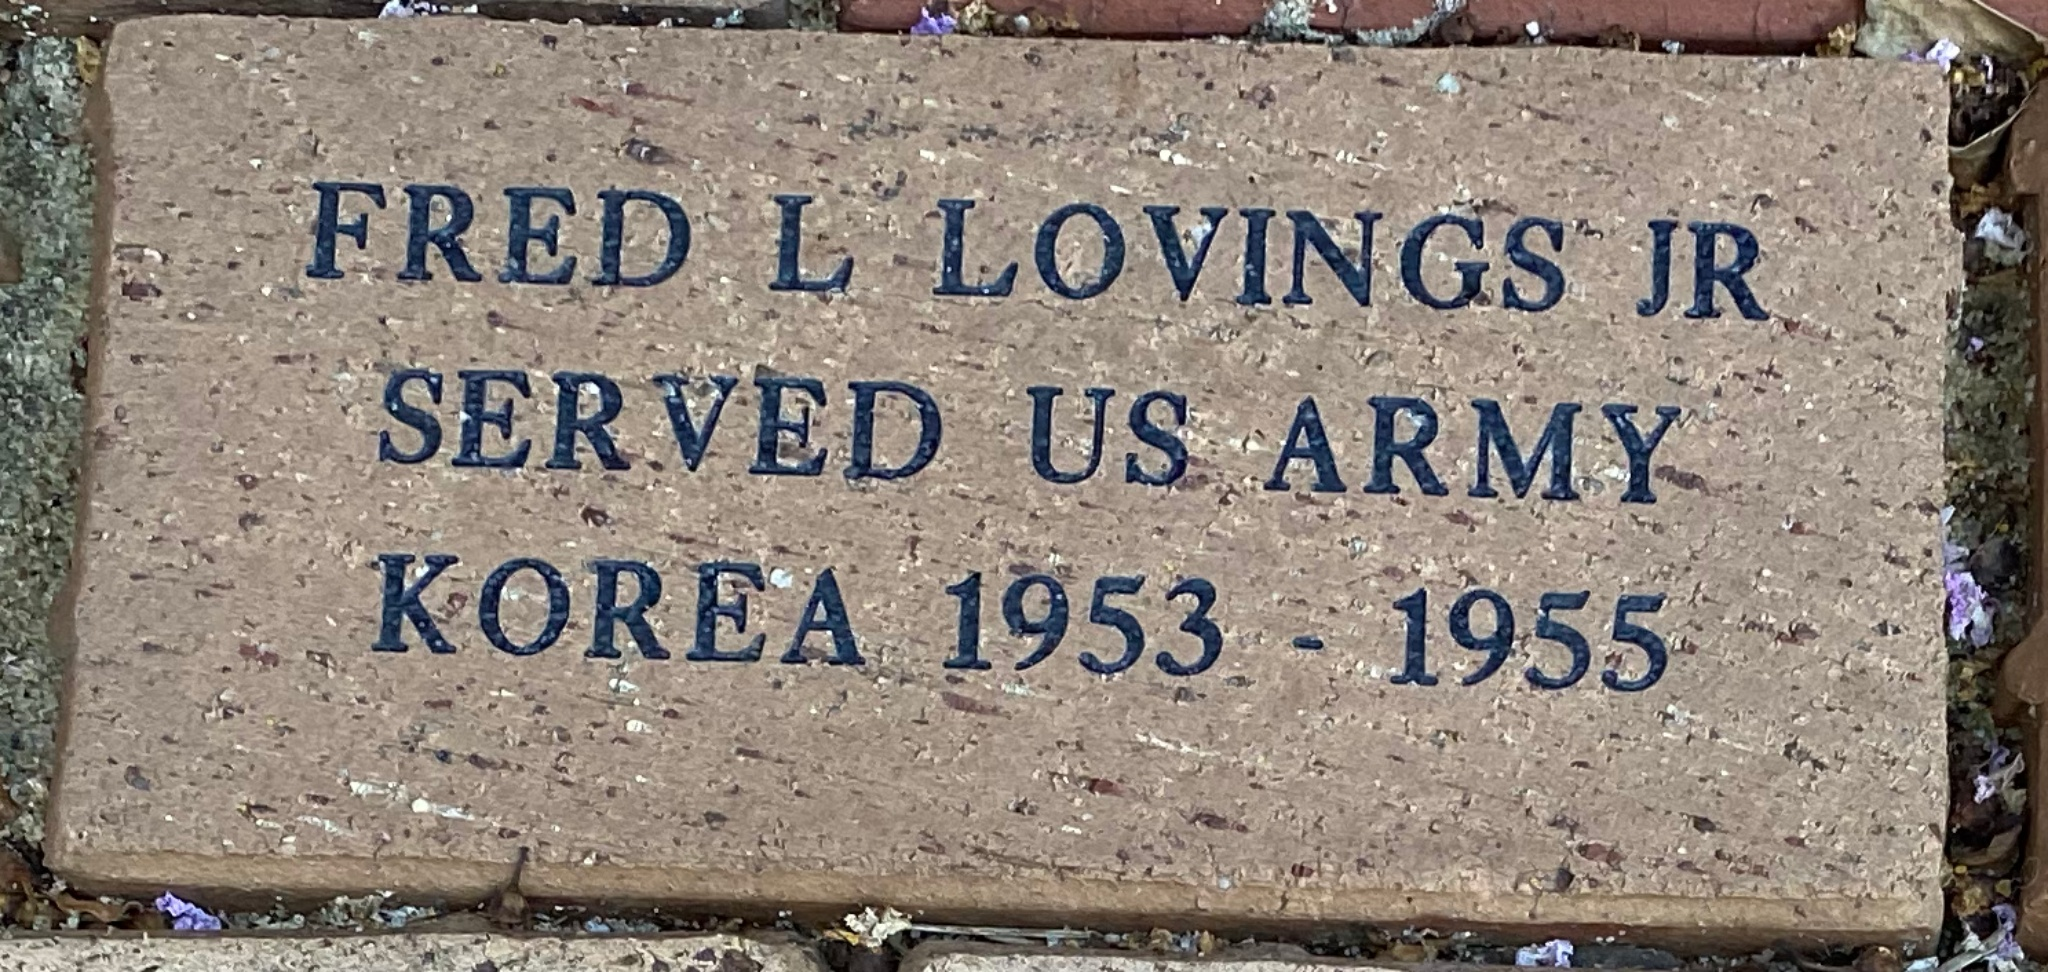 FRED L. LOVINGS JR SERVED US ARMY KOREA 1953 – 1955